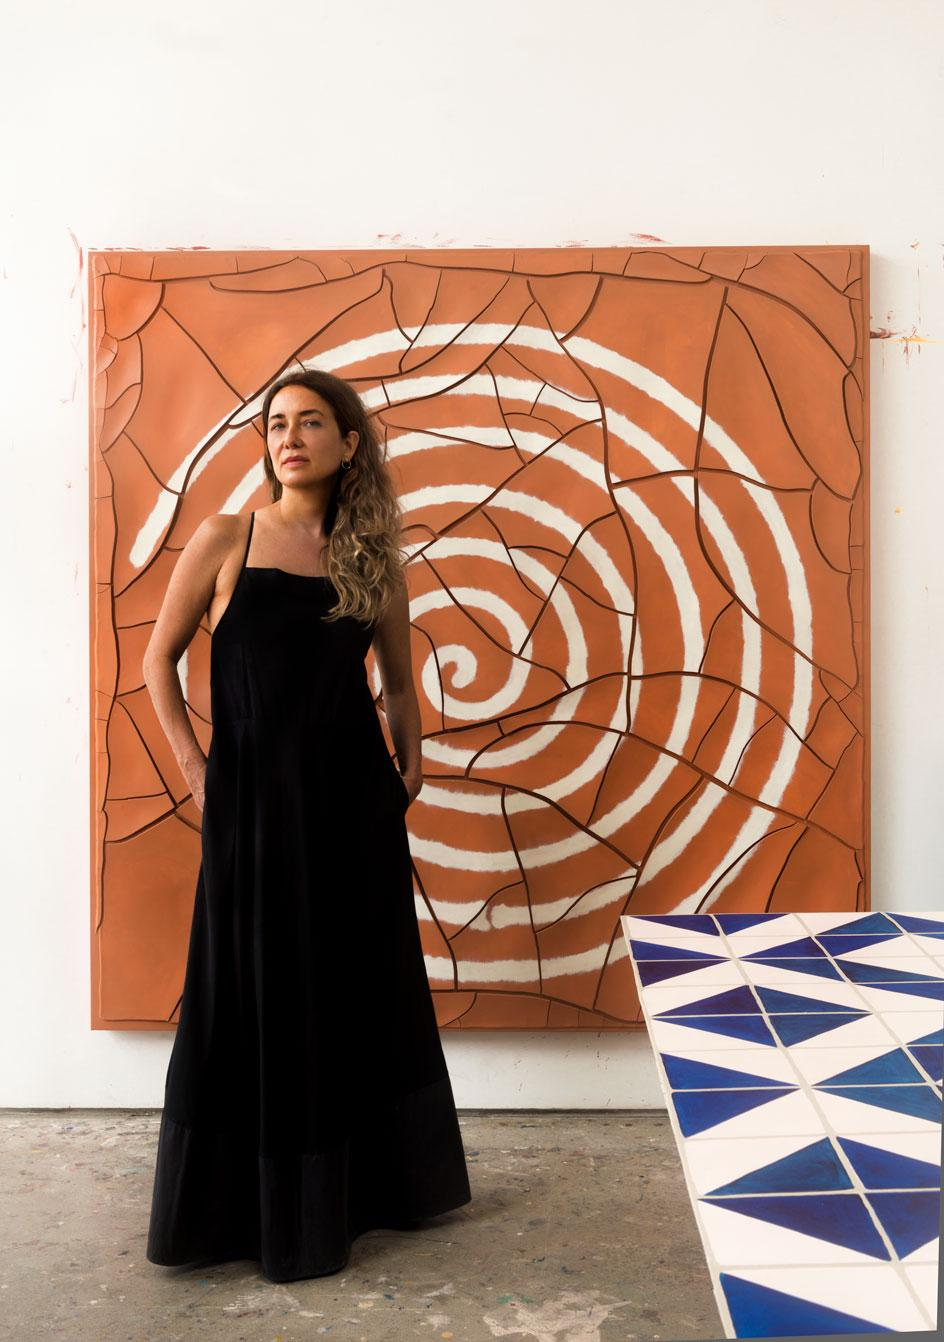 Adriana Varejão stands in front of her new painting, Espiral [Spiral], 2020.Photography: Vicente de Mello.Courtesy the artist and Gagosian